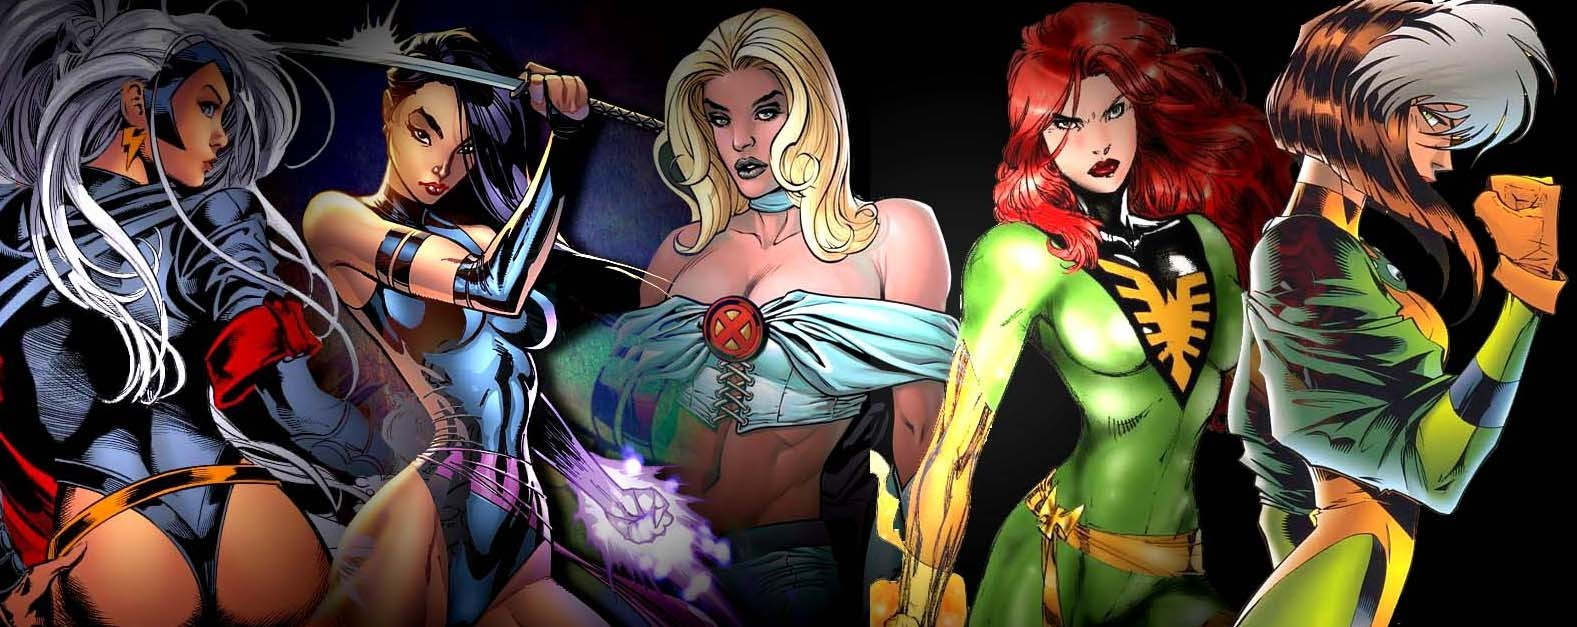 X Men Girl X-Men x-women